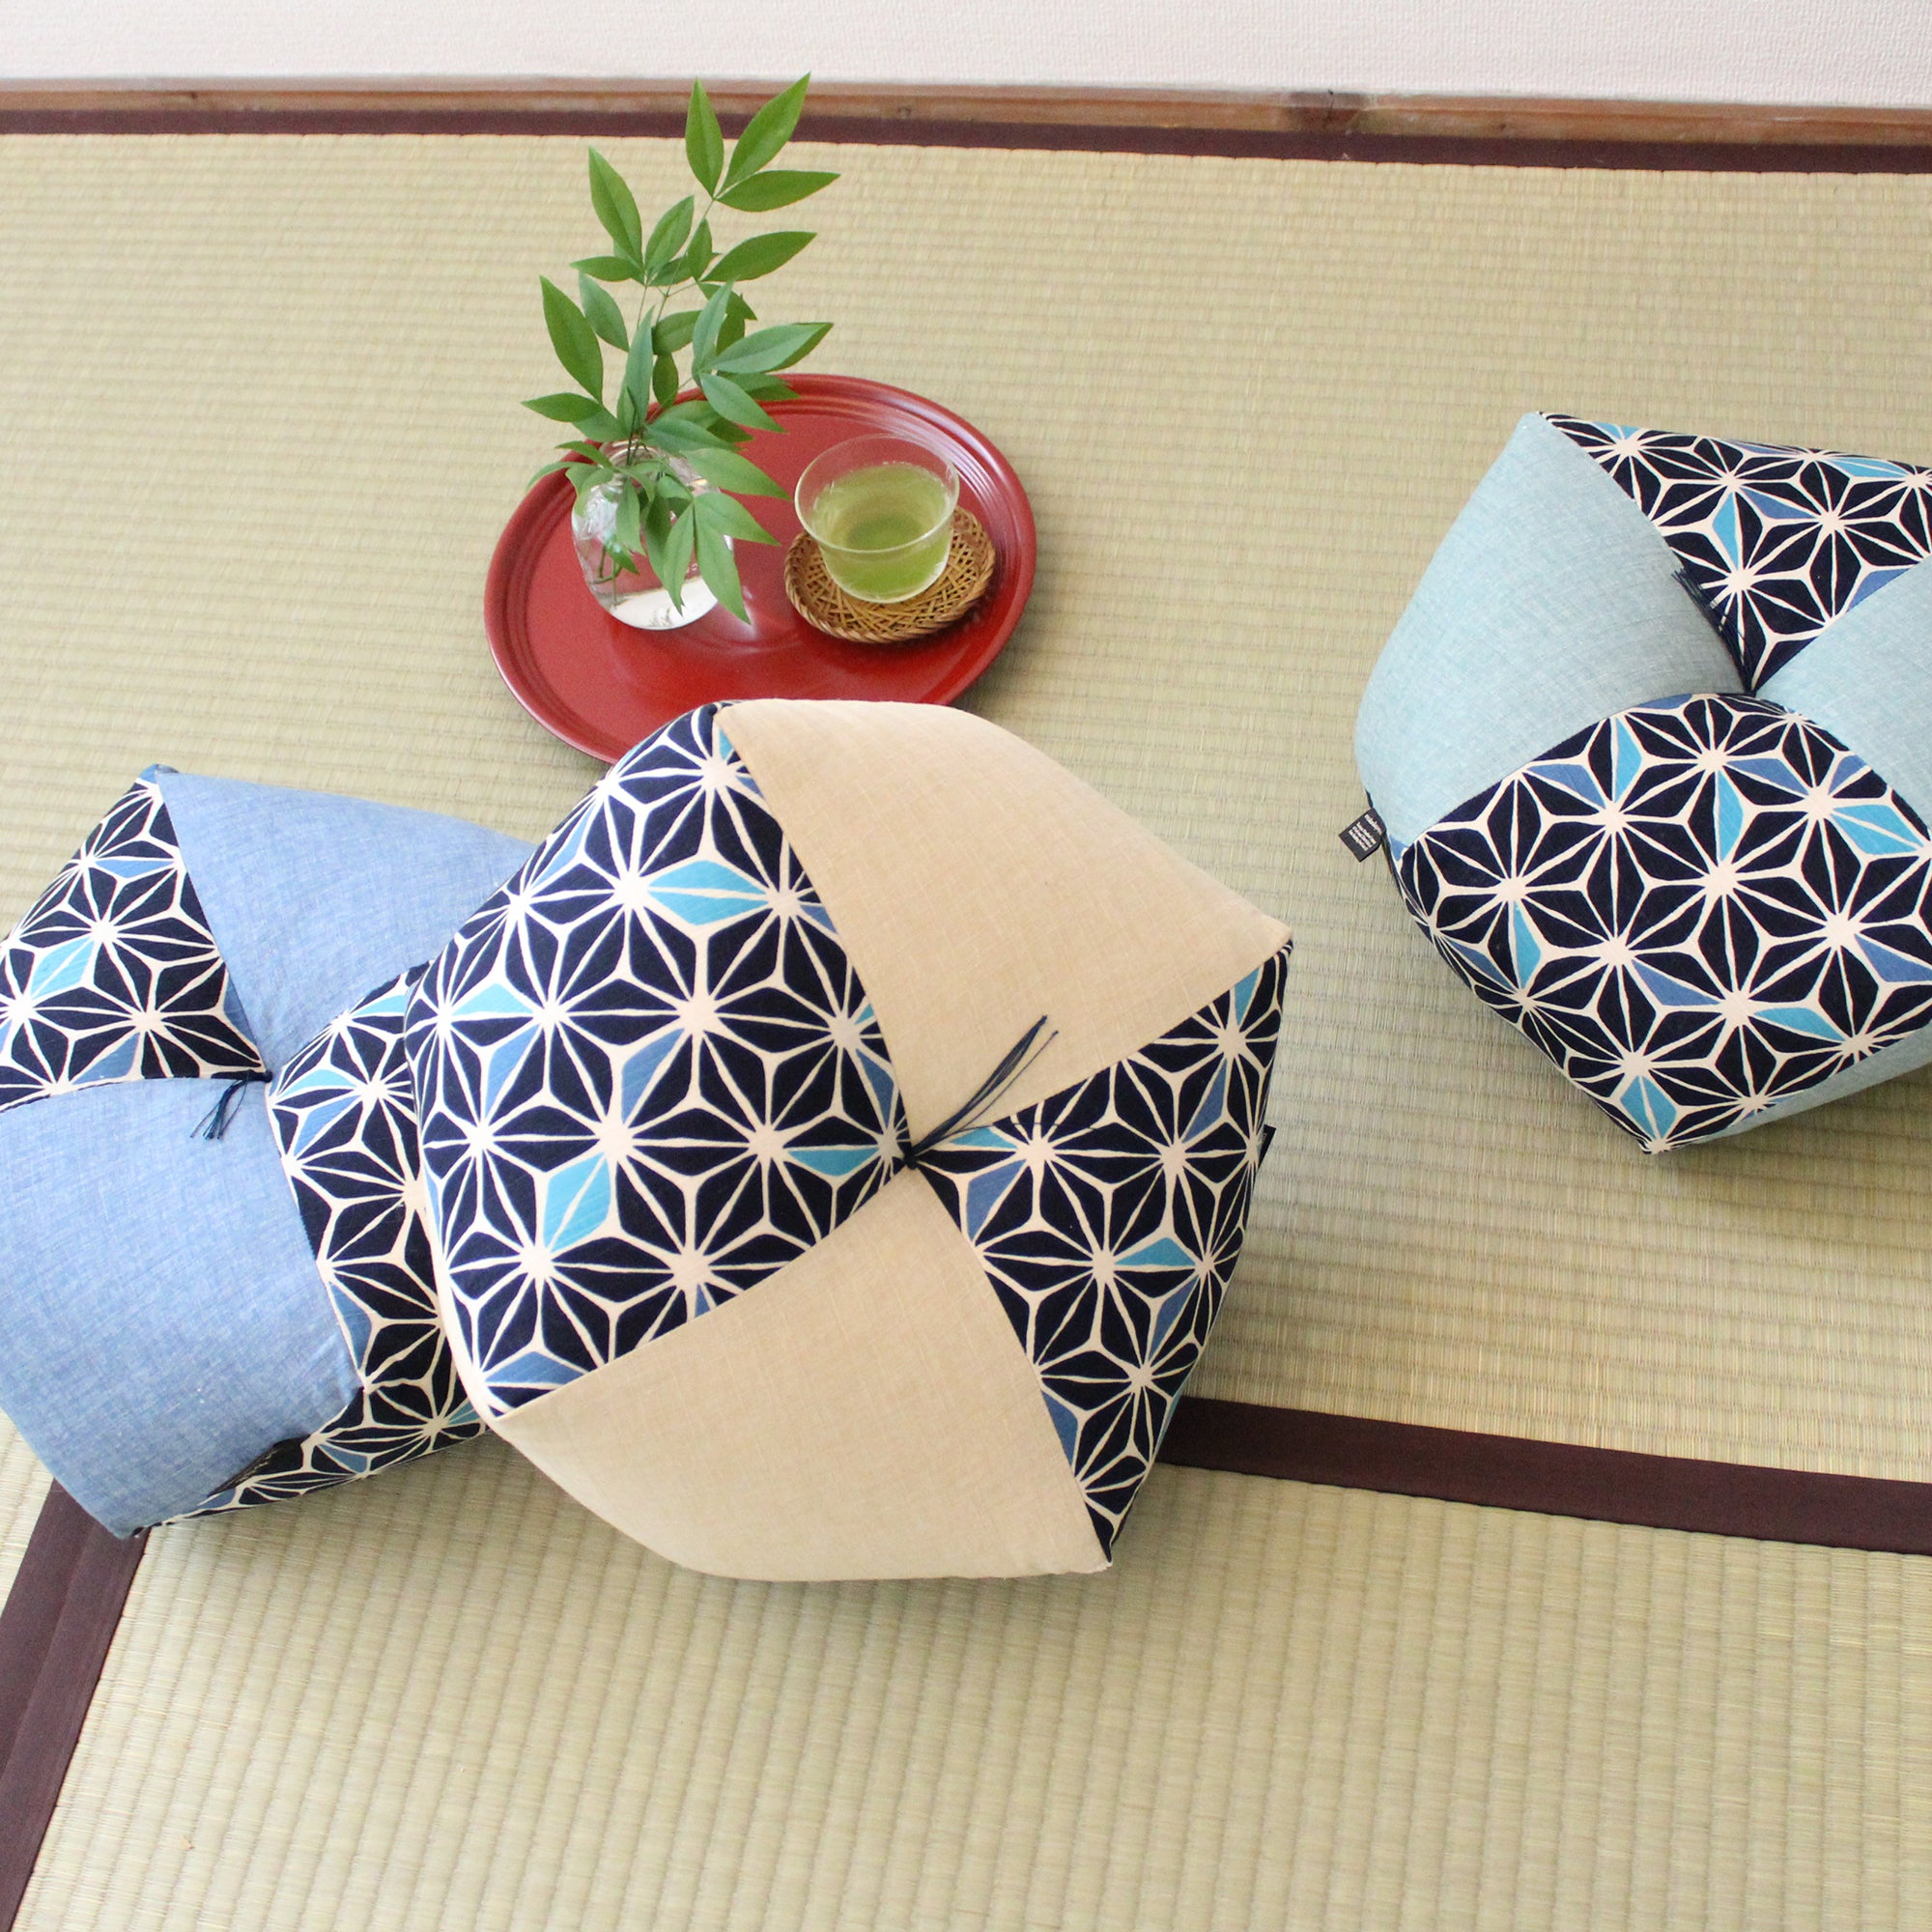 Ojami Cushion | Global Online Store Limited Asanoha Series - Takaokaya